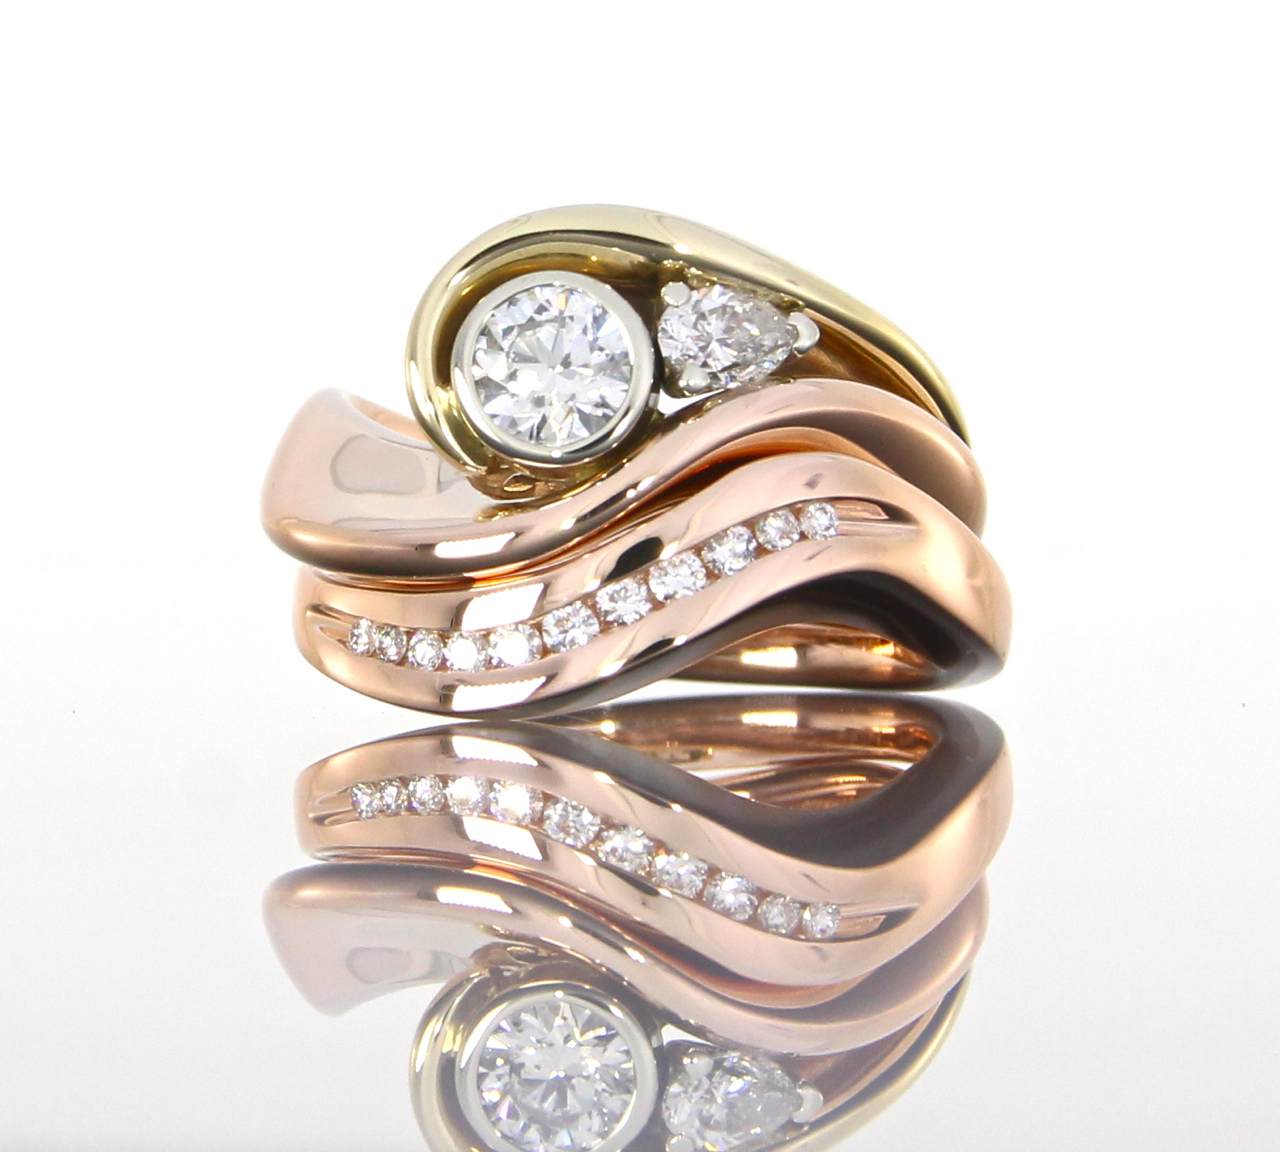 unique-custom-fit-round-diamond-shadow-band-rose-gold-ladies-wedding-band-craft-revival-jewelry-store-grand-rapids